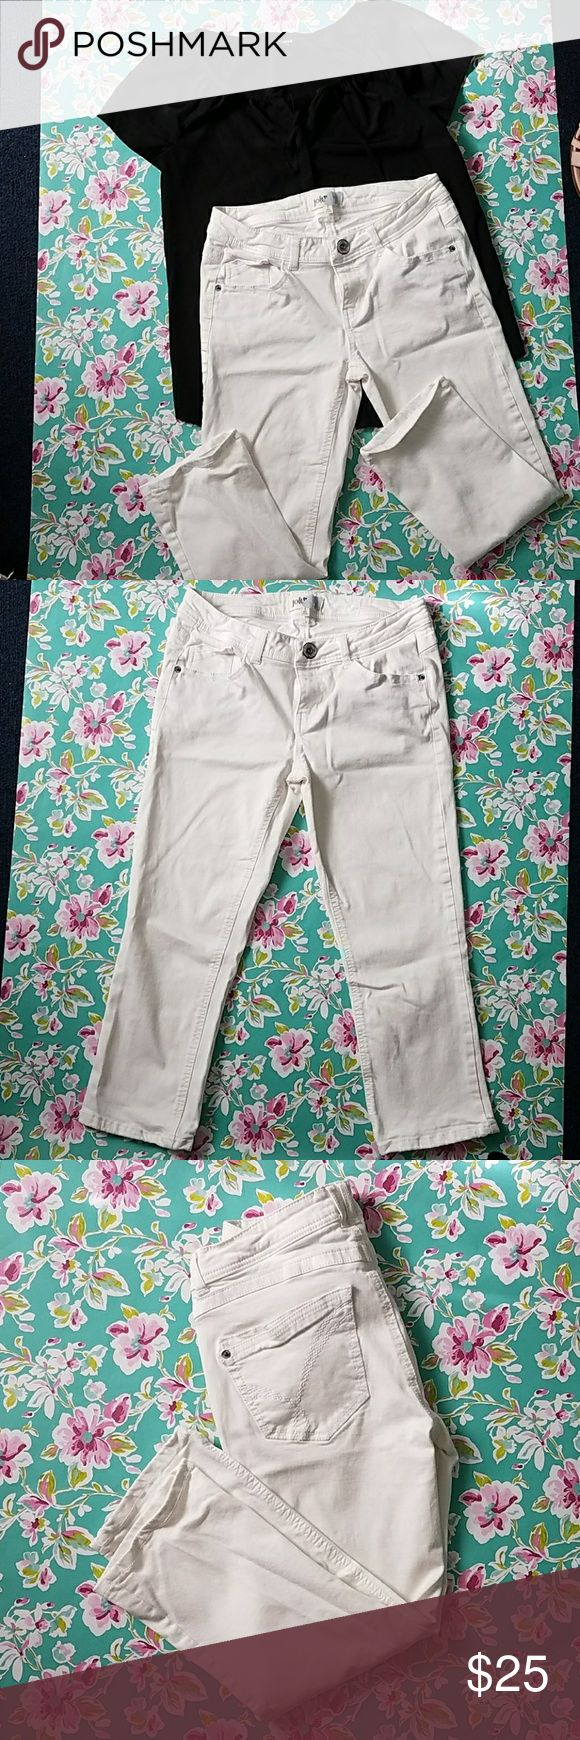 "LAST CHANCE ** Capris-Jolt- size 3 Final price Jolt- White- Size 3- capri- Skinny leg. Great condition.gently worn. Waist: 14"" Inseam: 21"" Any questions please feel free to ask.  Thank you for visiting Poshmark closet. Jolt Jeans Ankle & Cropped"